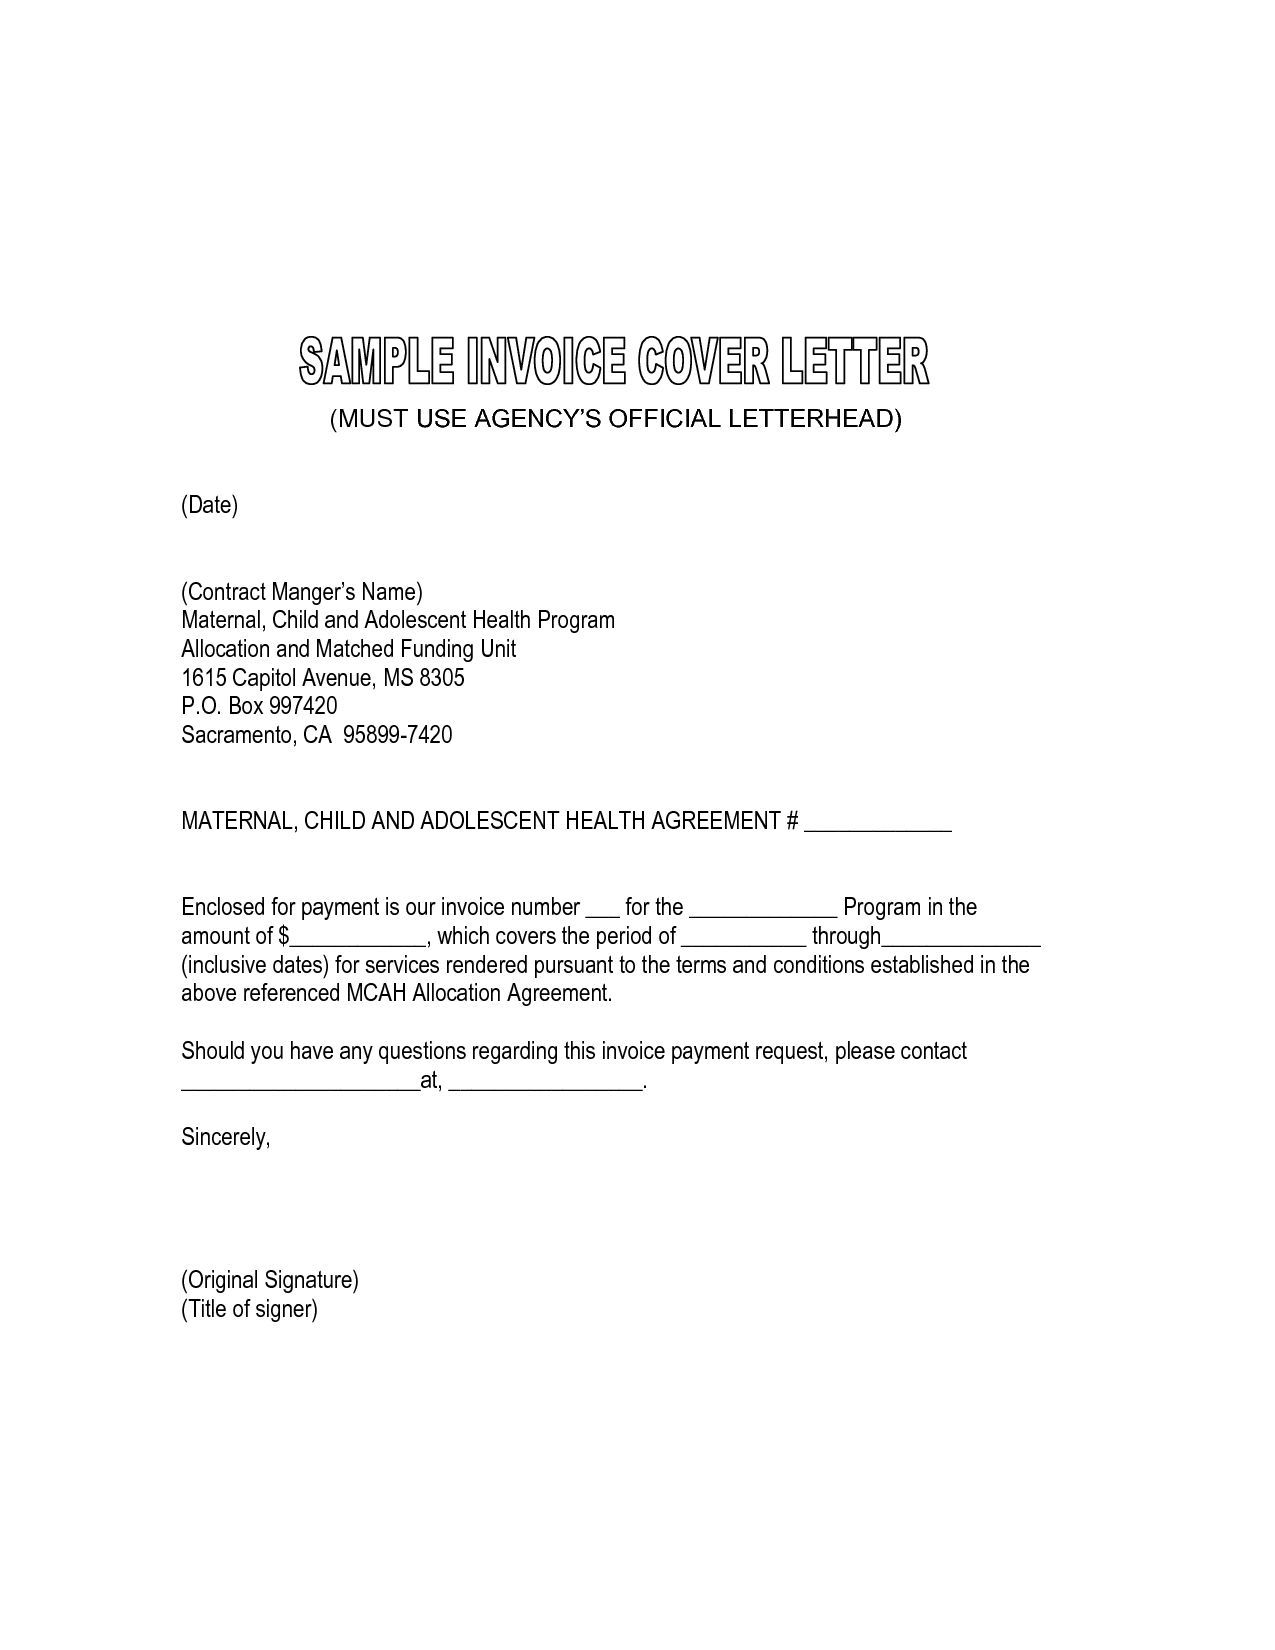 Cover Letter For Invoice Submission